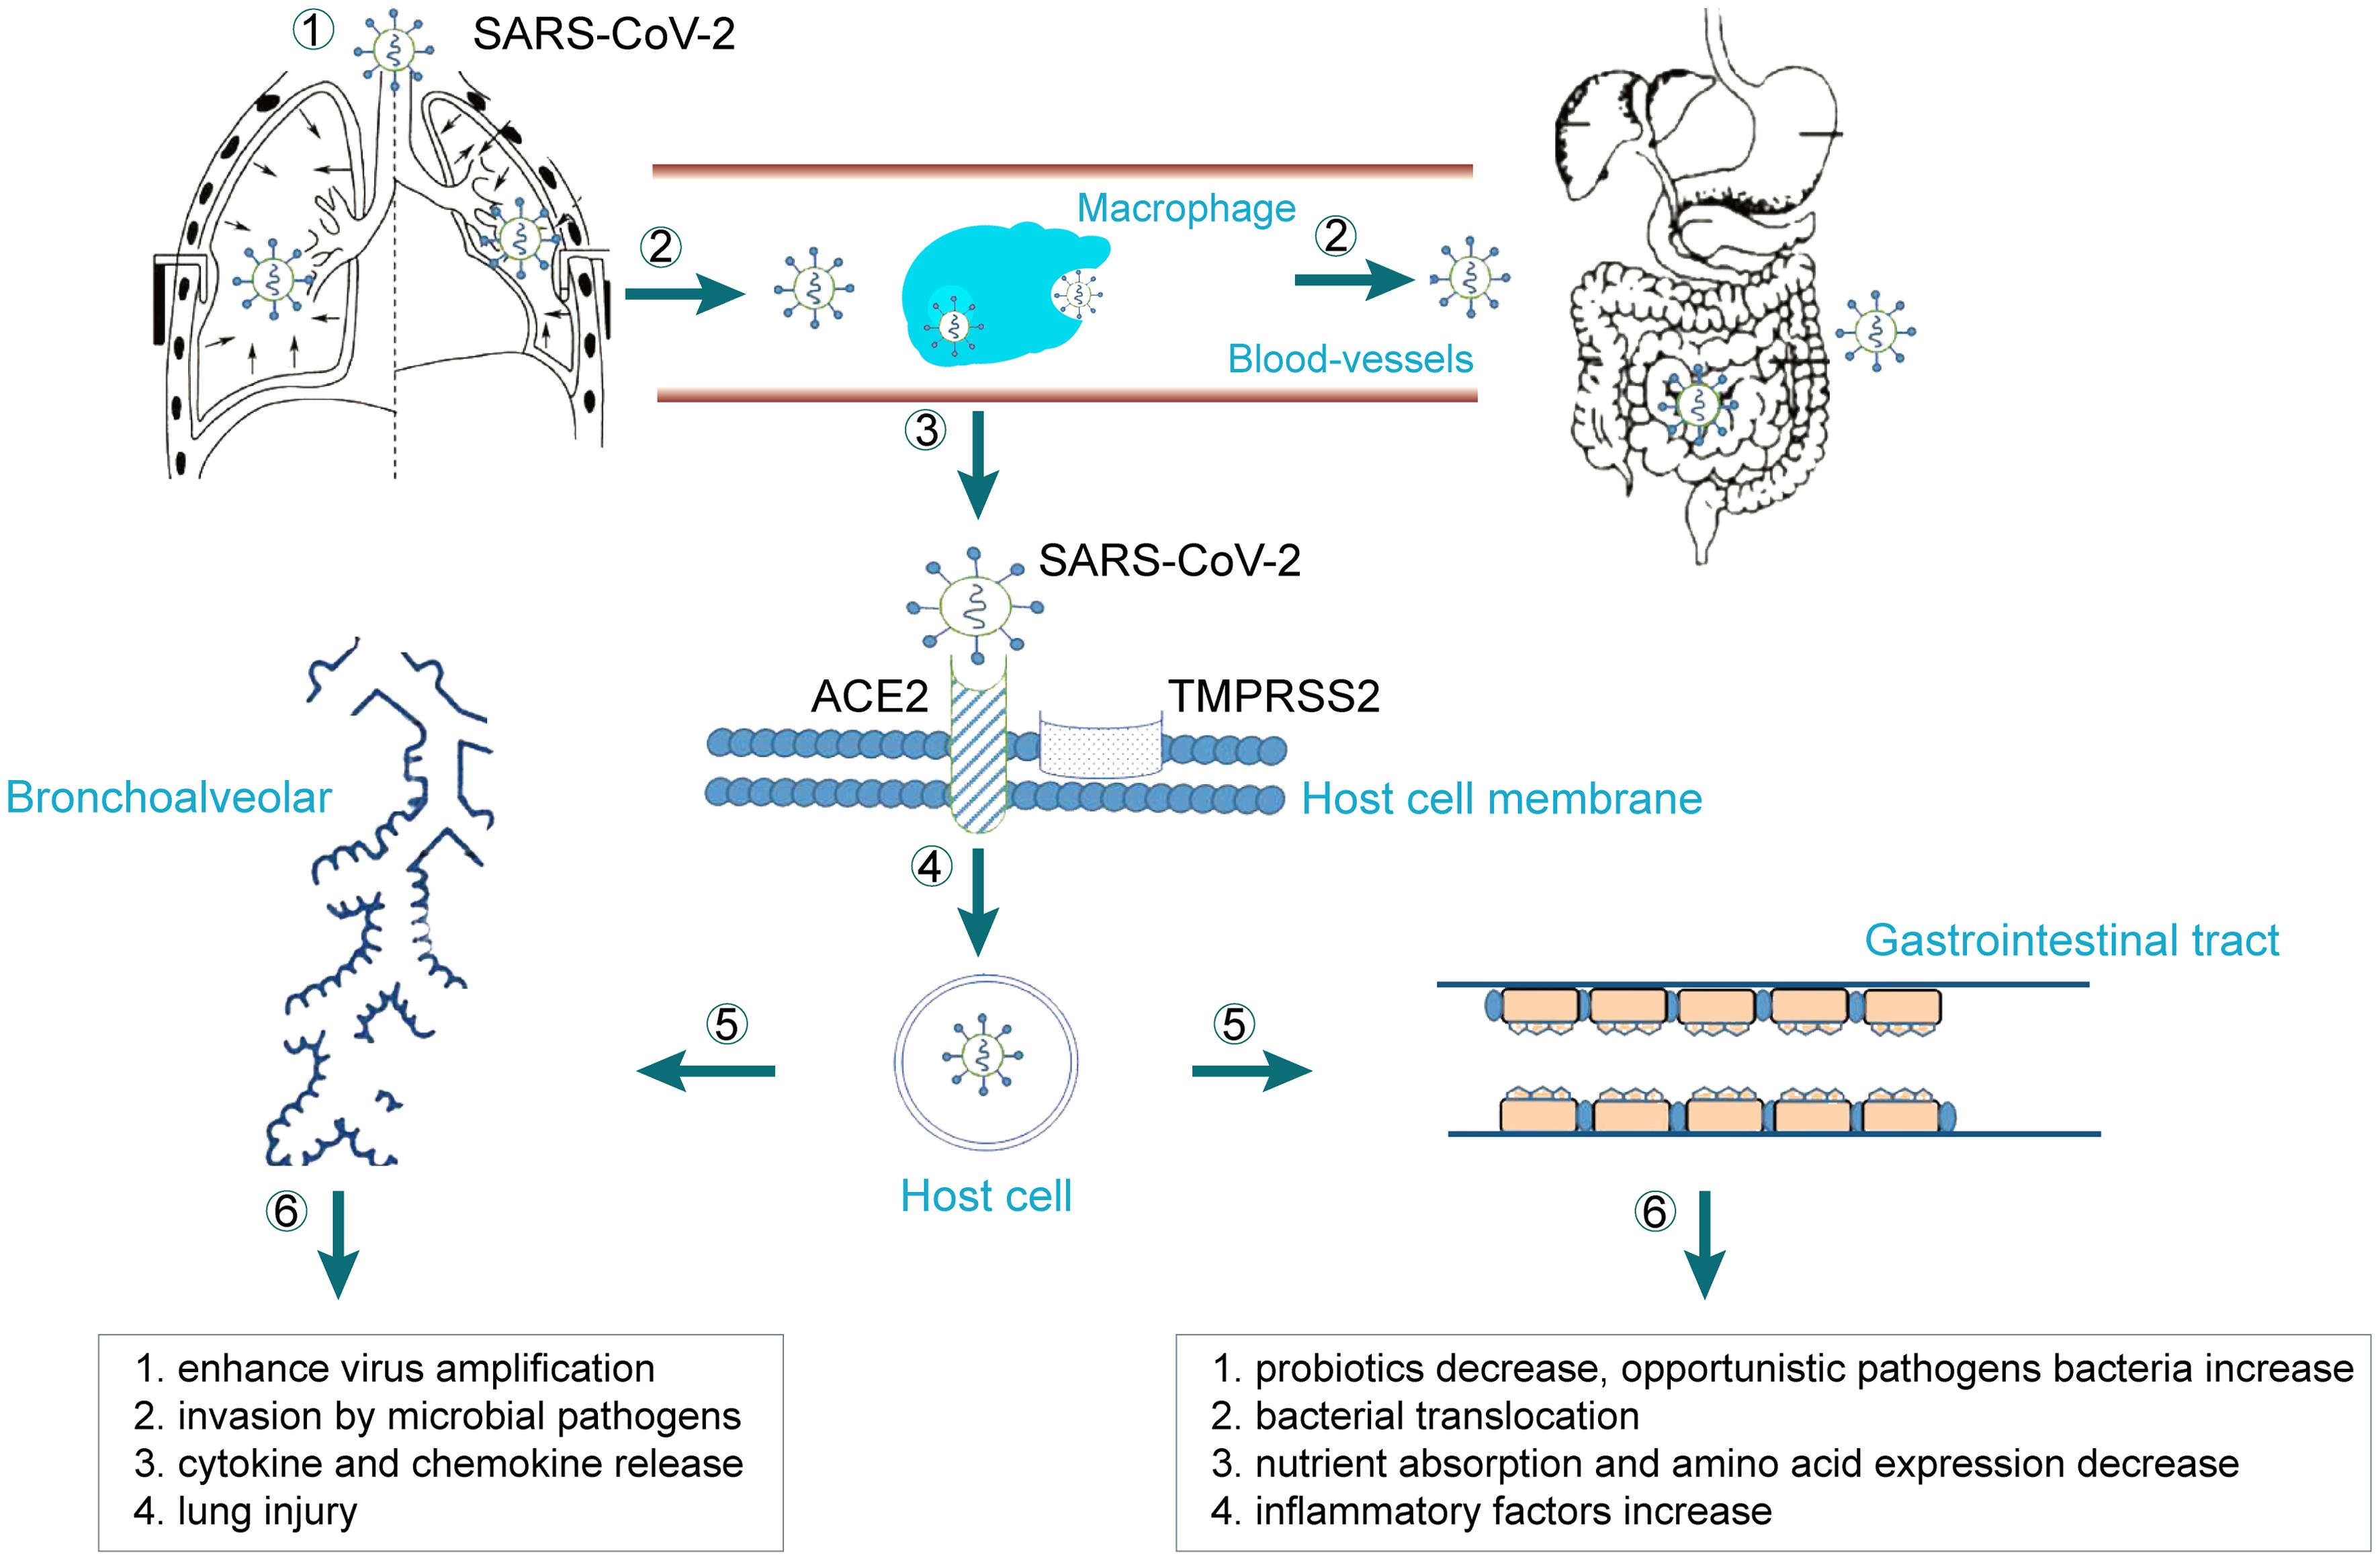 A model for the process by which SARS-CoV-2 enters host cells in the lung and gastrointestinal tract.